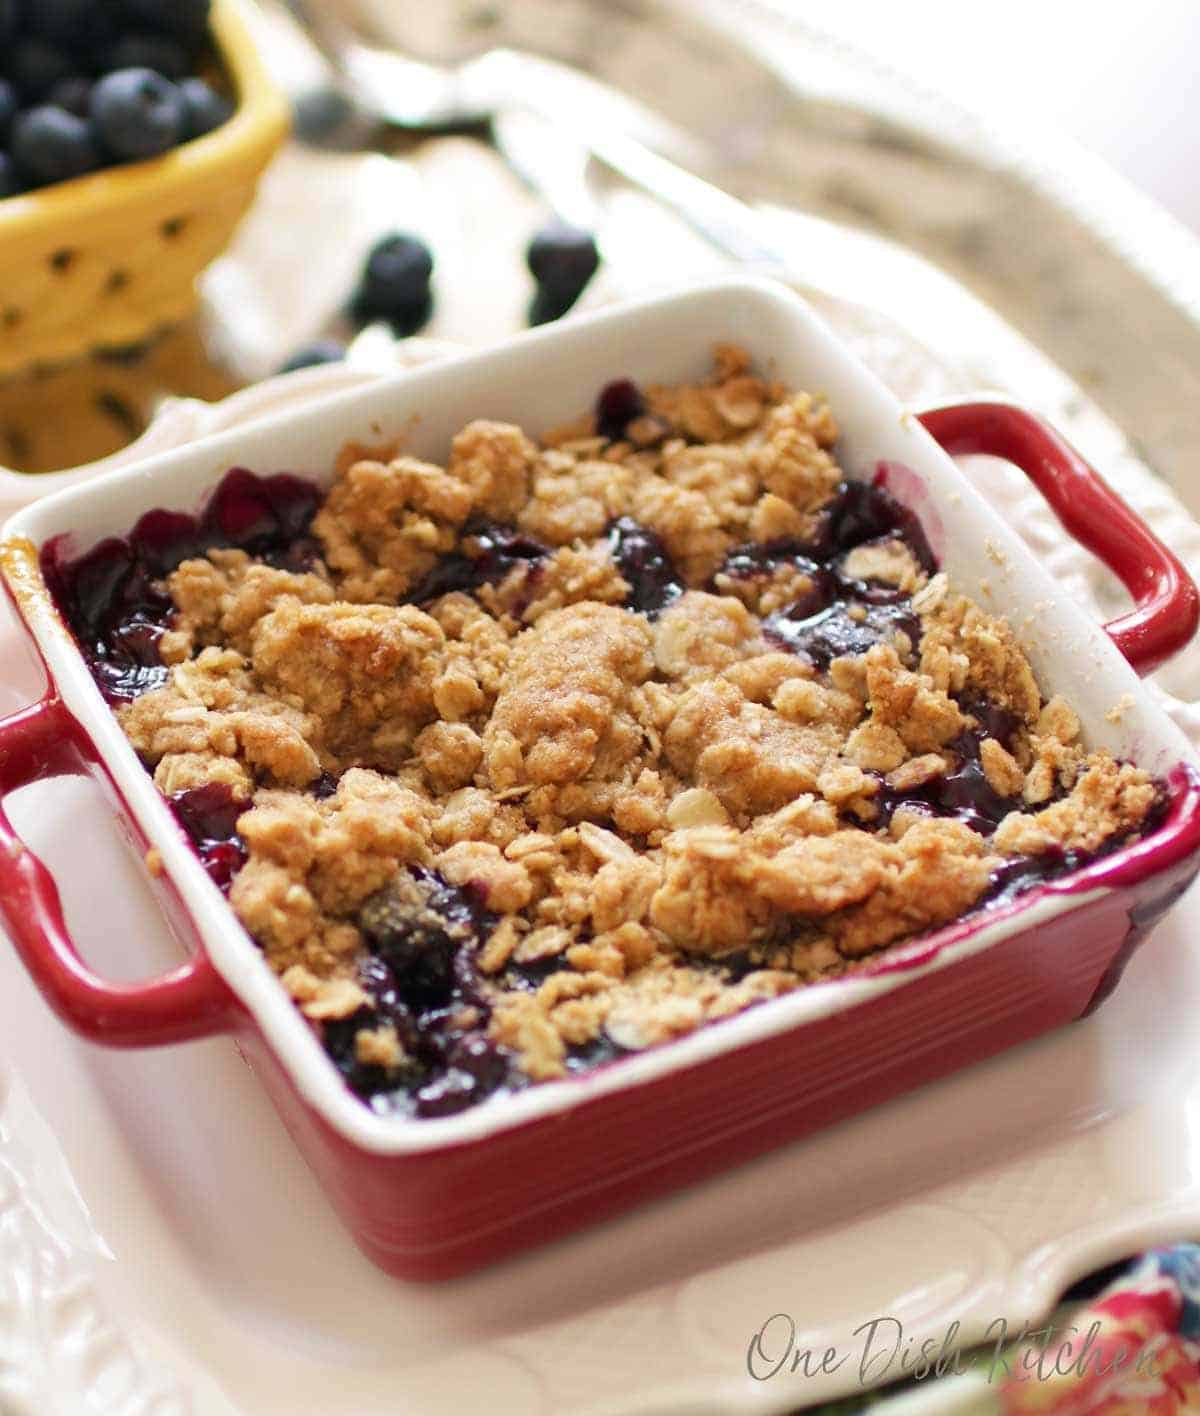 Blueberry crumble in a small red baking dish topped with baked oat topping